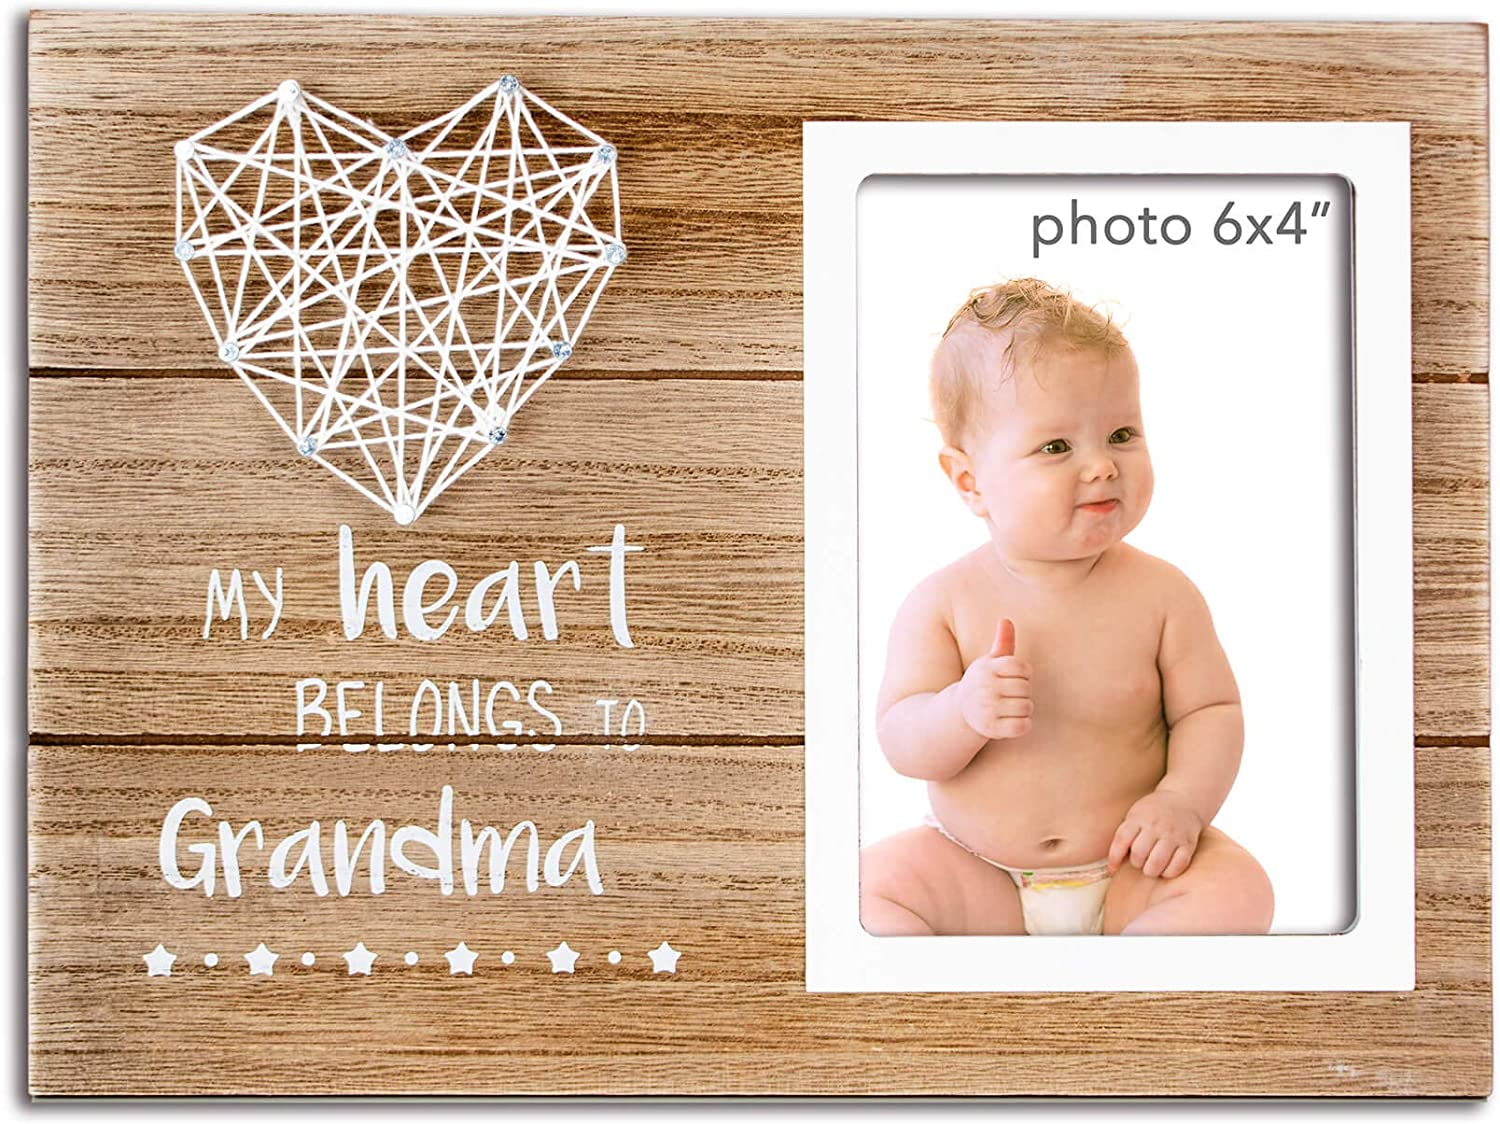 Vilight Promoted To Grandma Gifts Nana Picture Frame Grandmother Grammy Present From Granddaughter And Grandson 4x6 Inches Photo Amazon Com